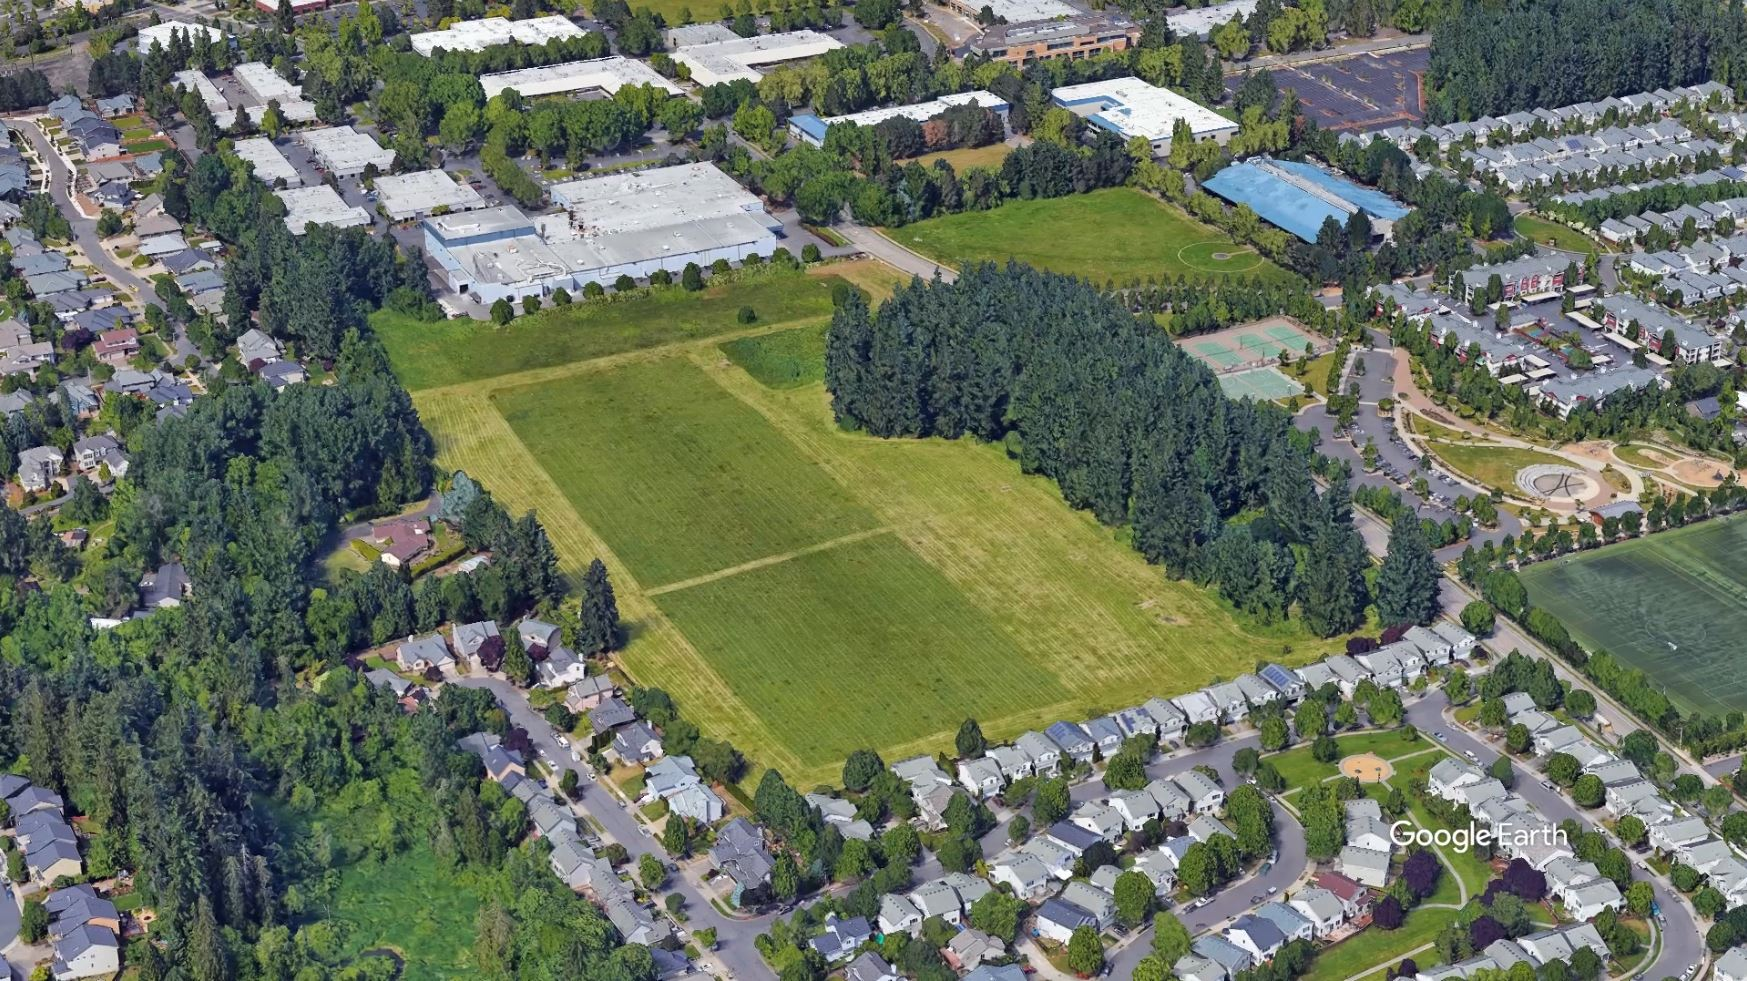 aerial view of the park site